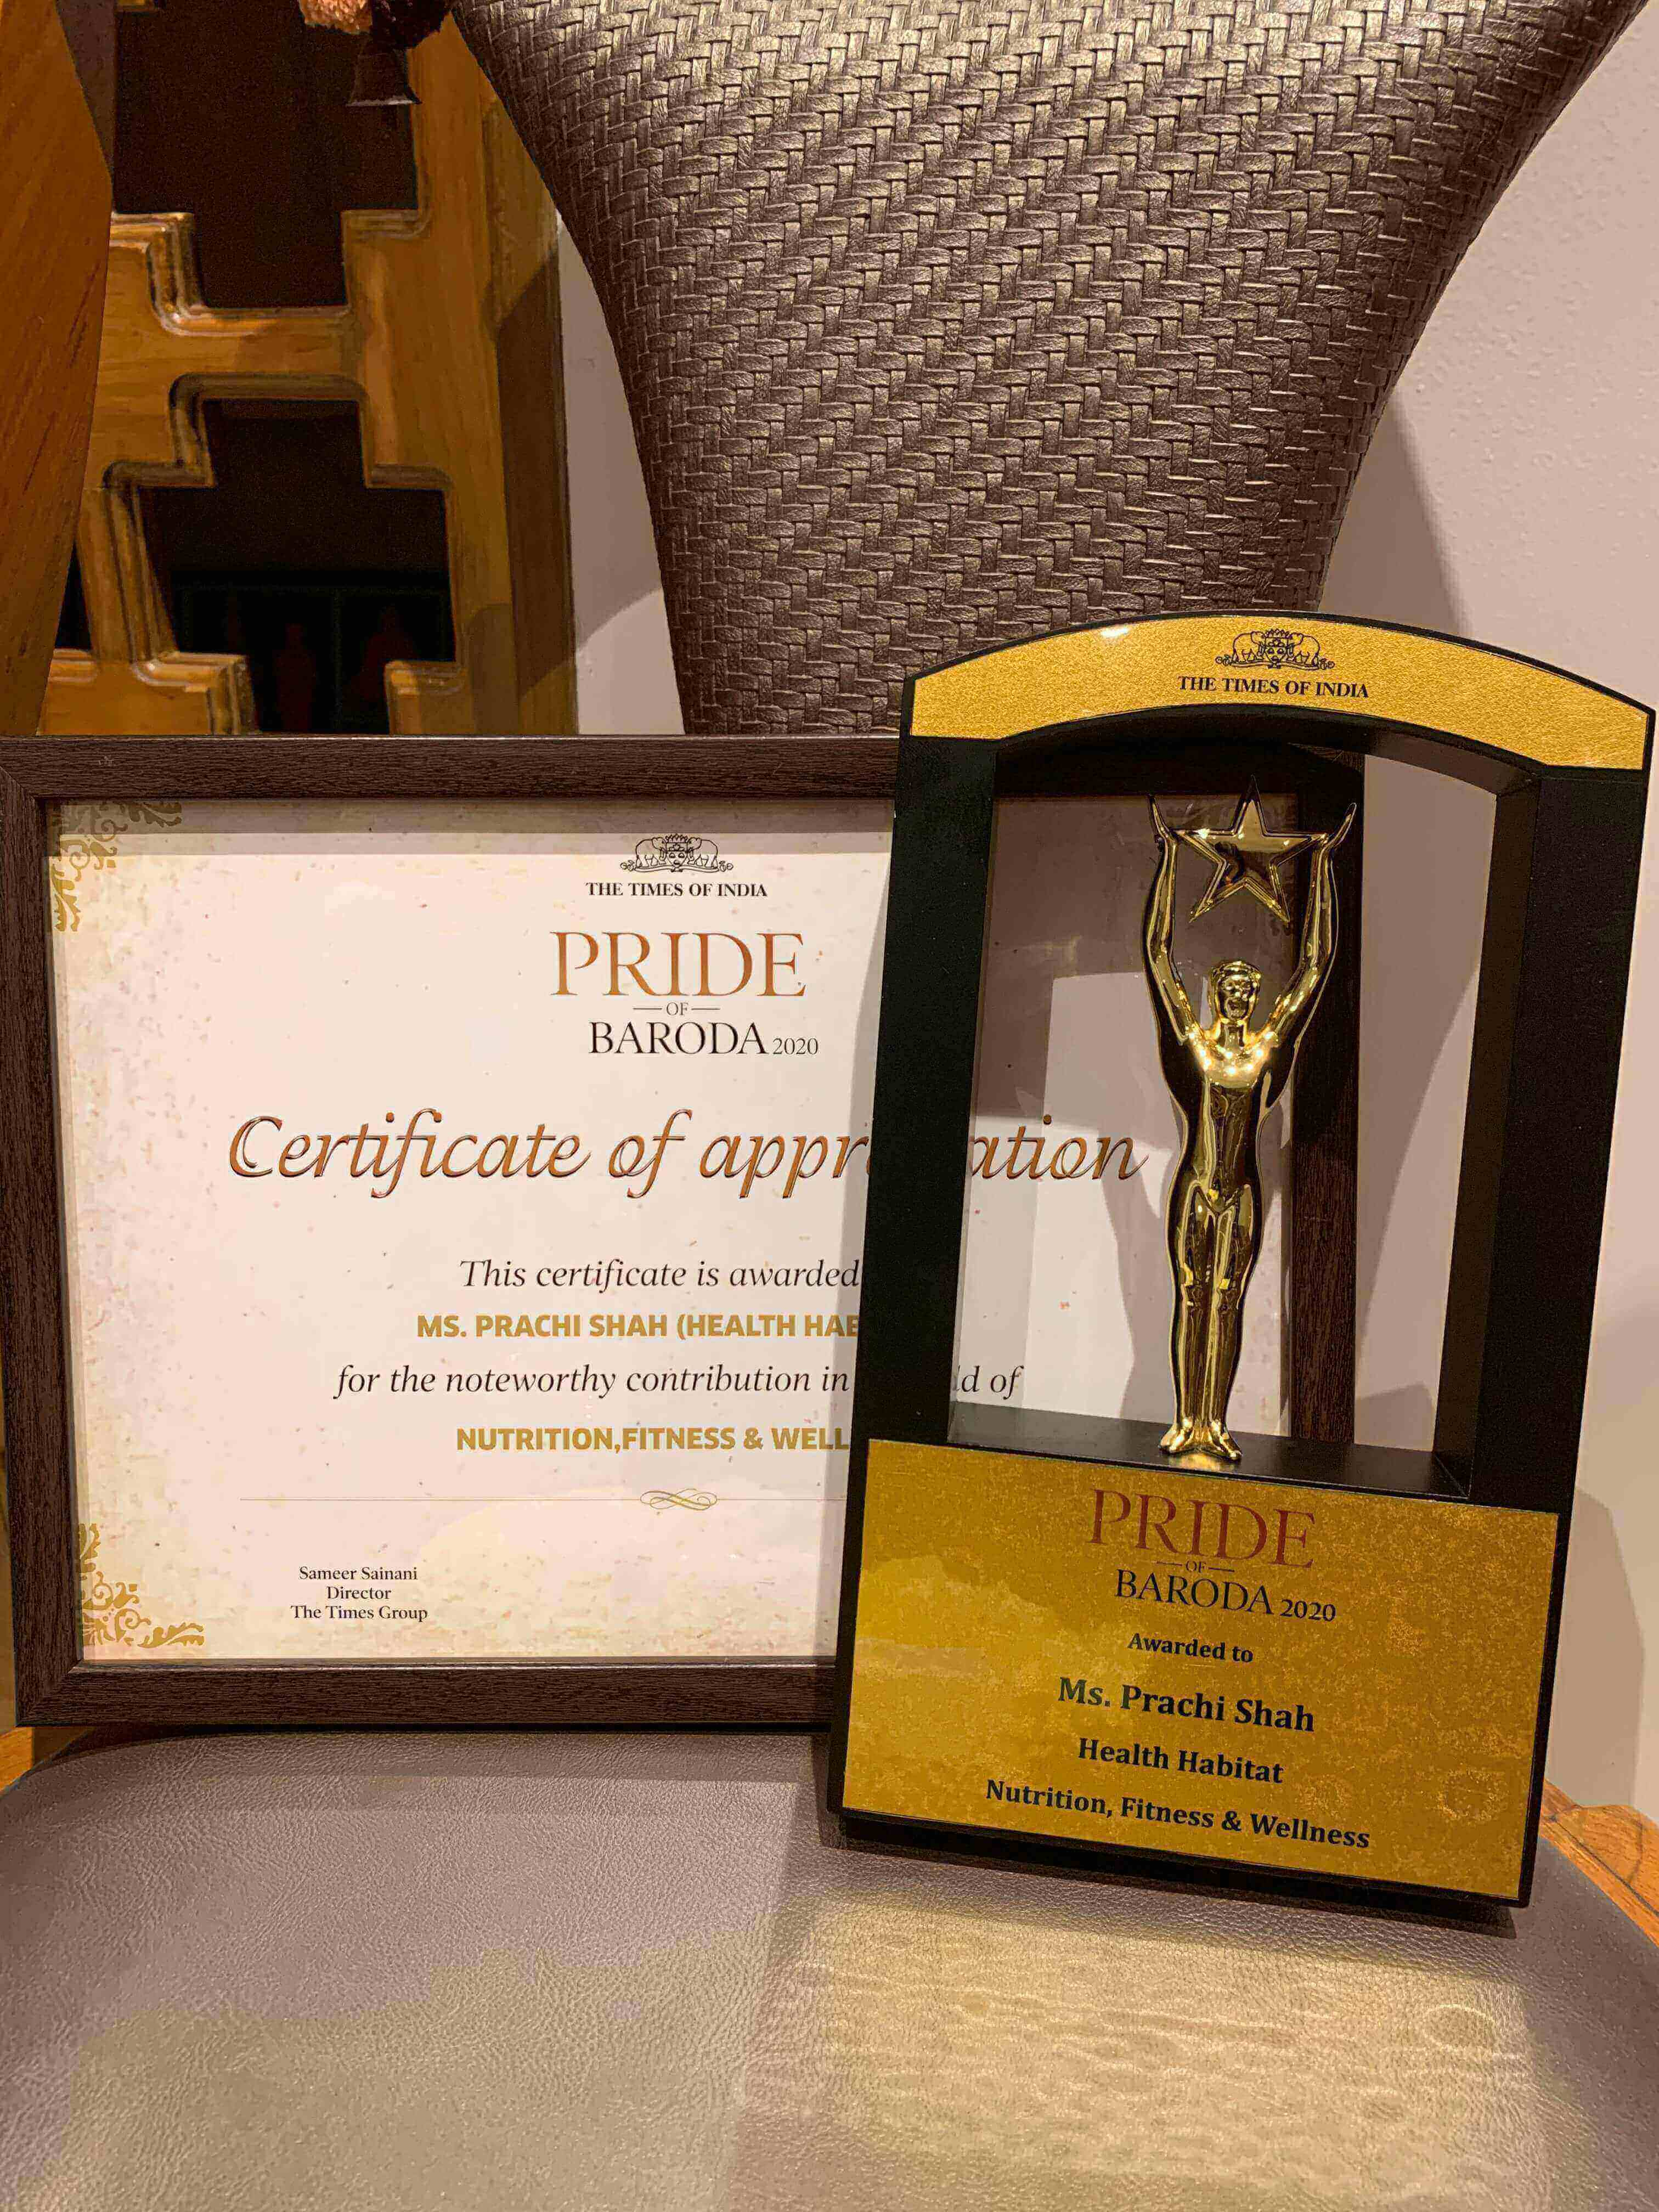 The Times of India - Pride of Baroda 20201